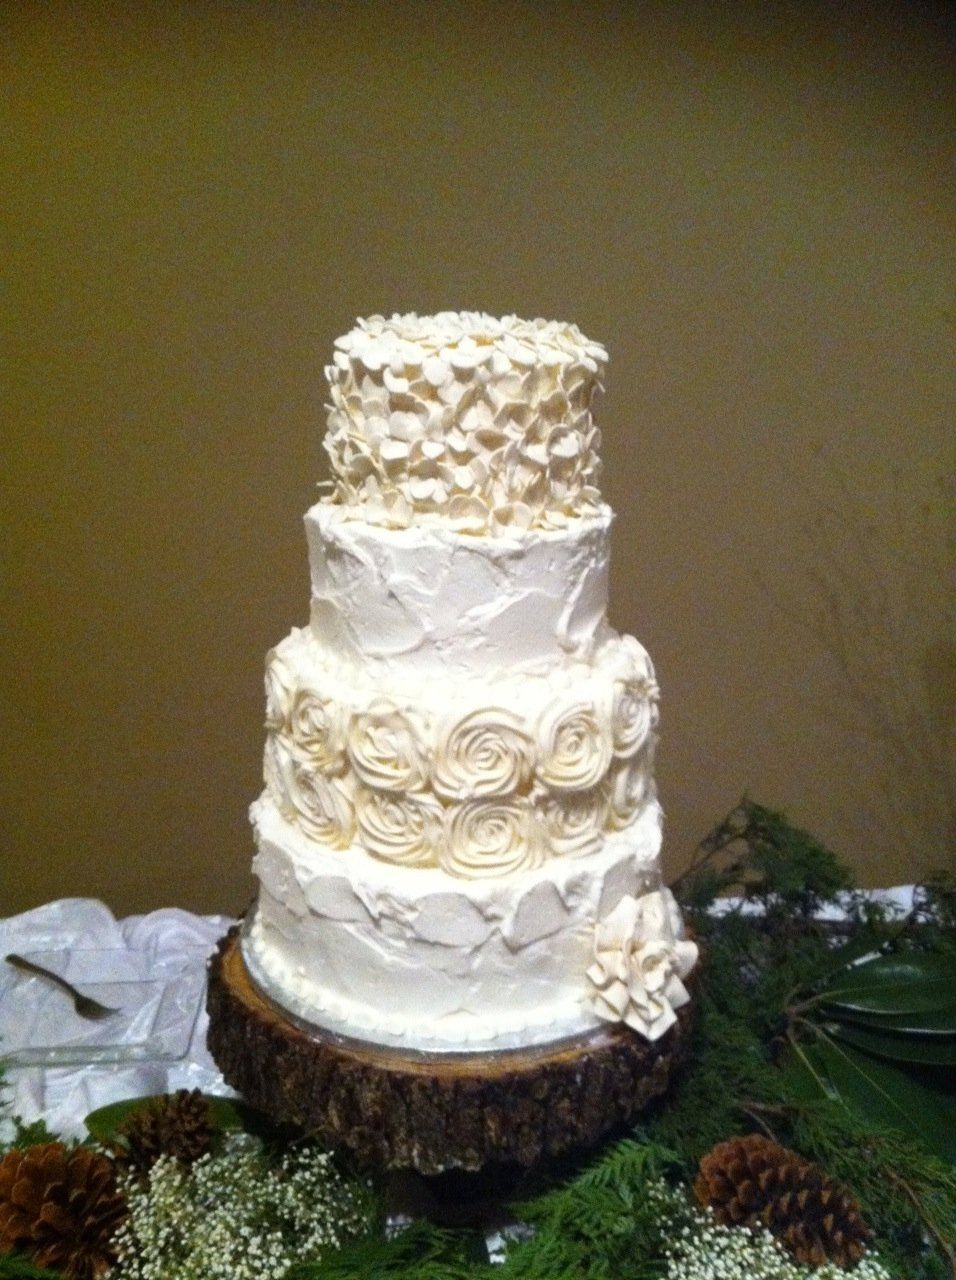 Rustic Wedding Cake With Piped Roses Rough Texture Hydrangea Flowers Icing On